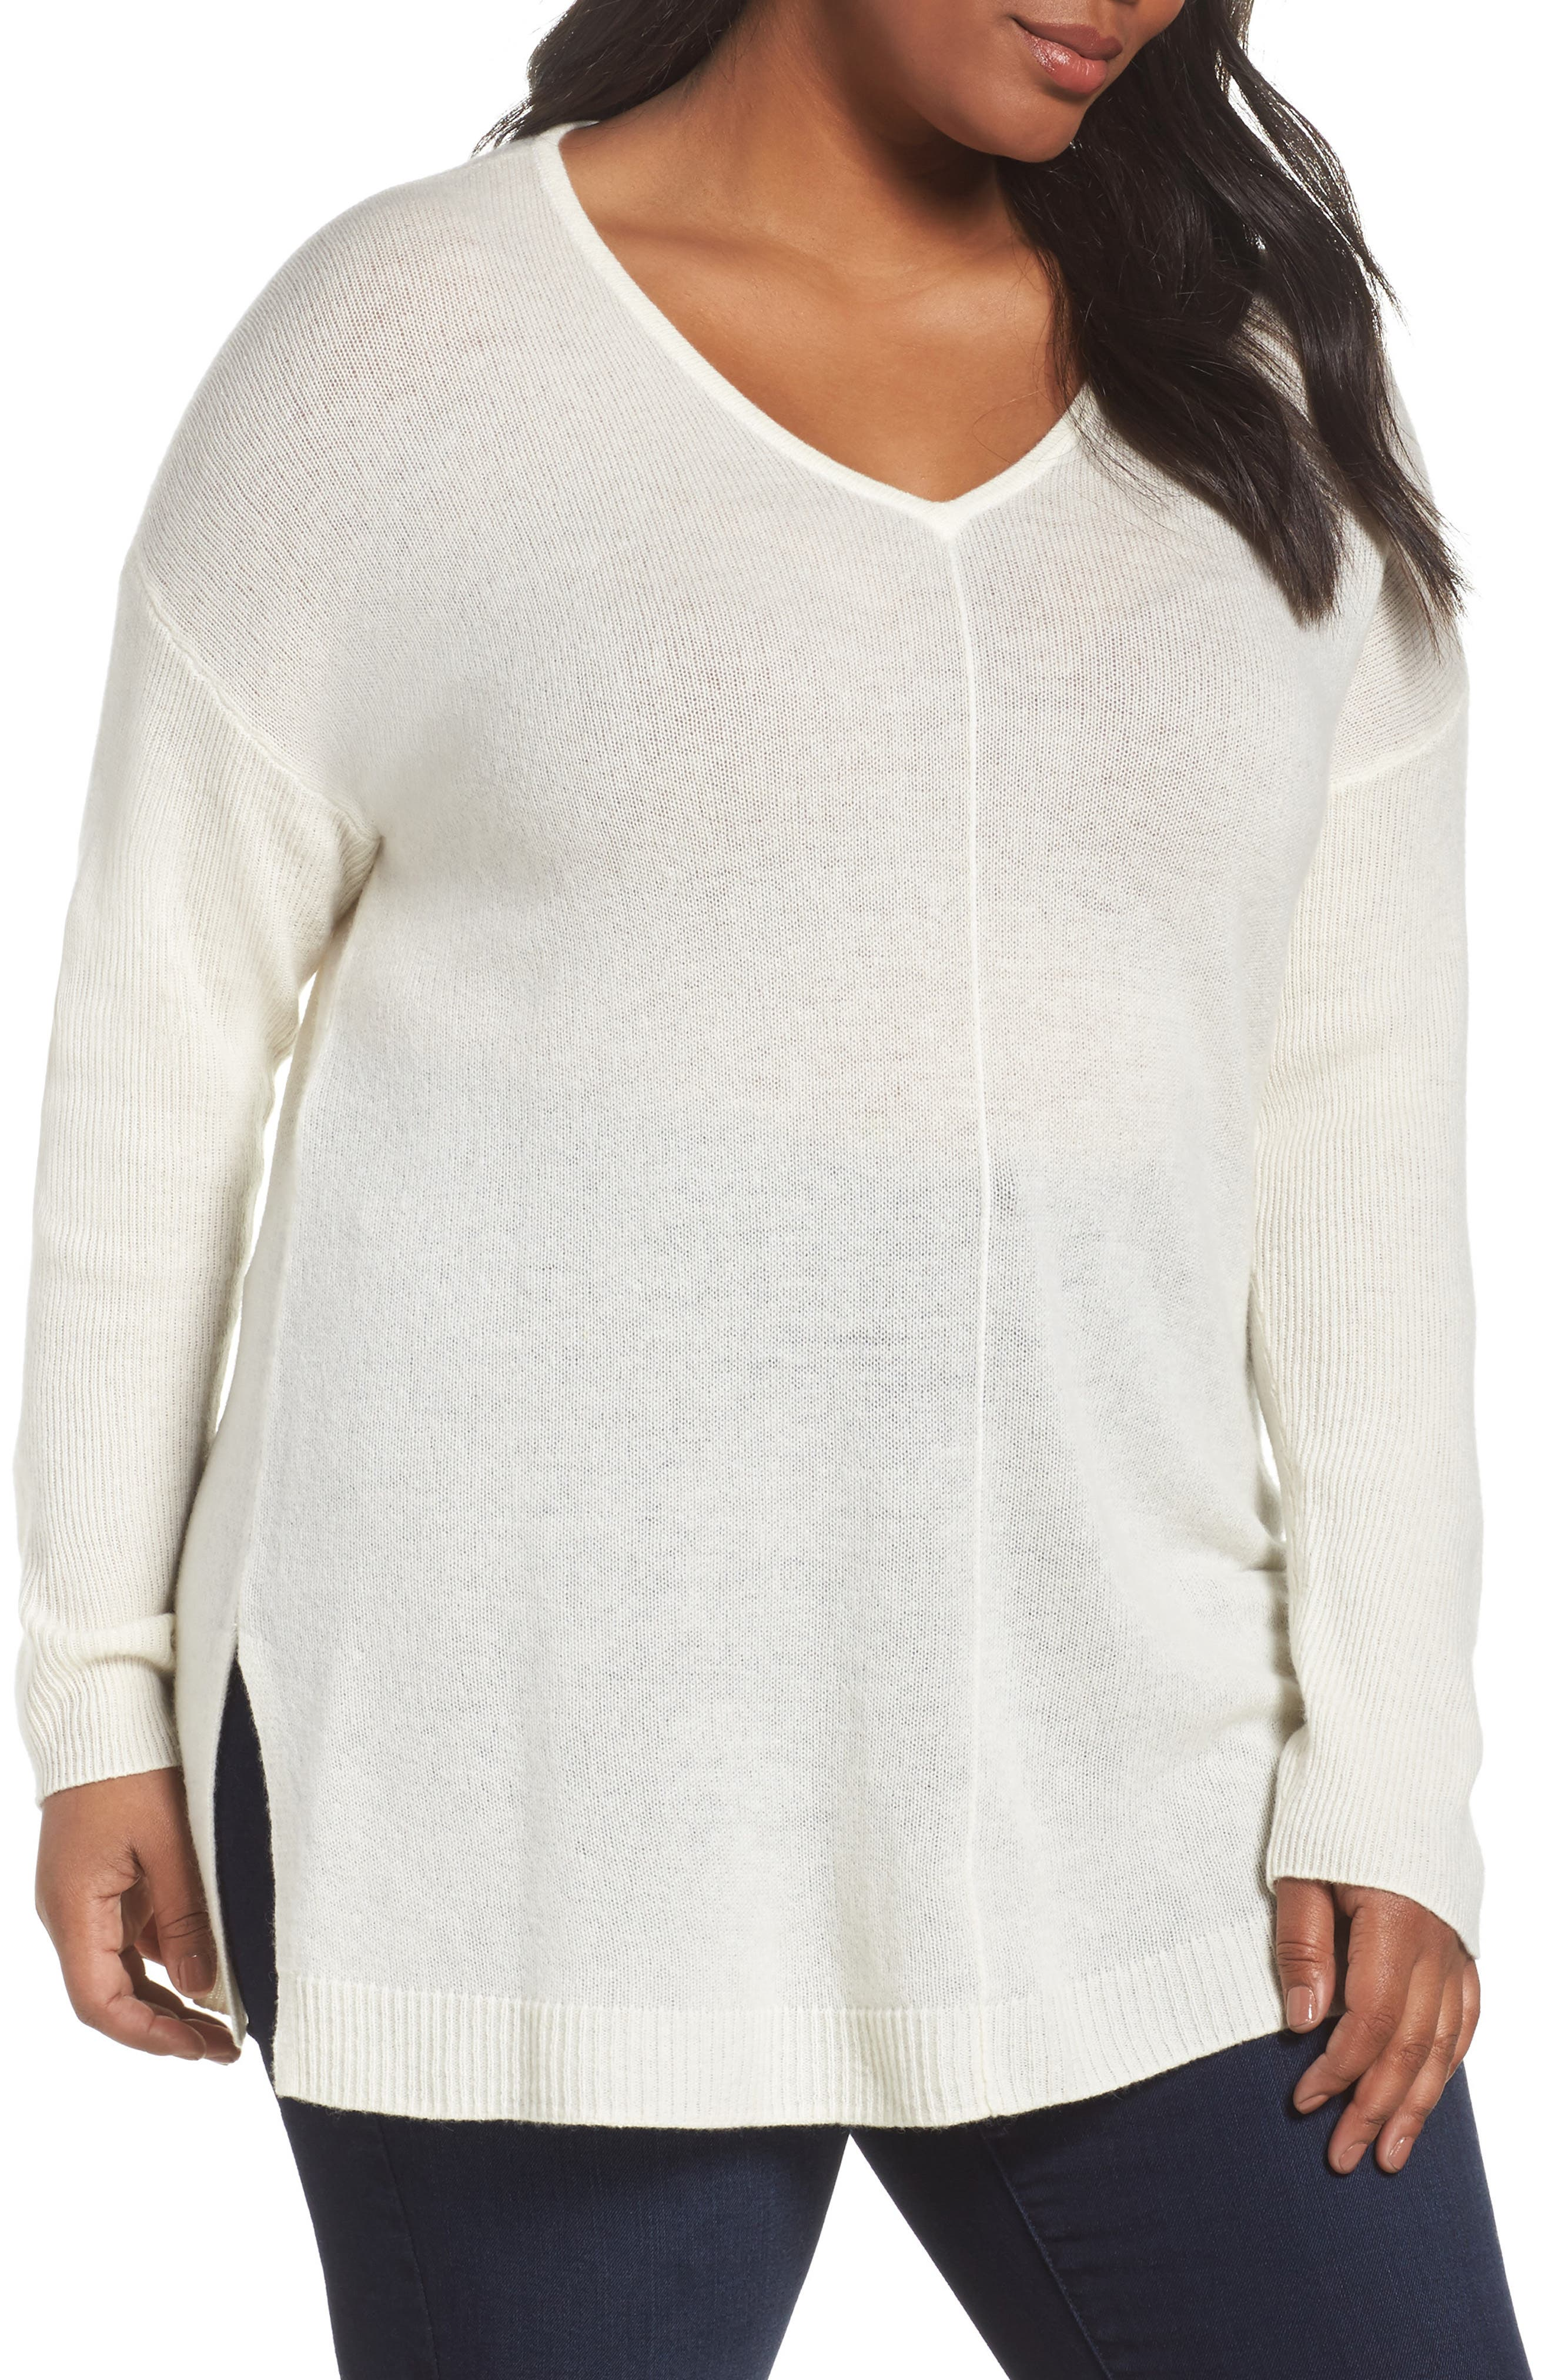 Women's Off-White Cashmere Sweaters | Nordstrom